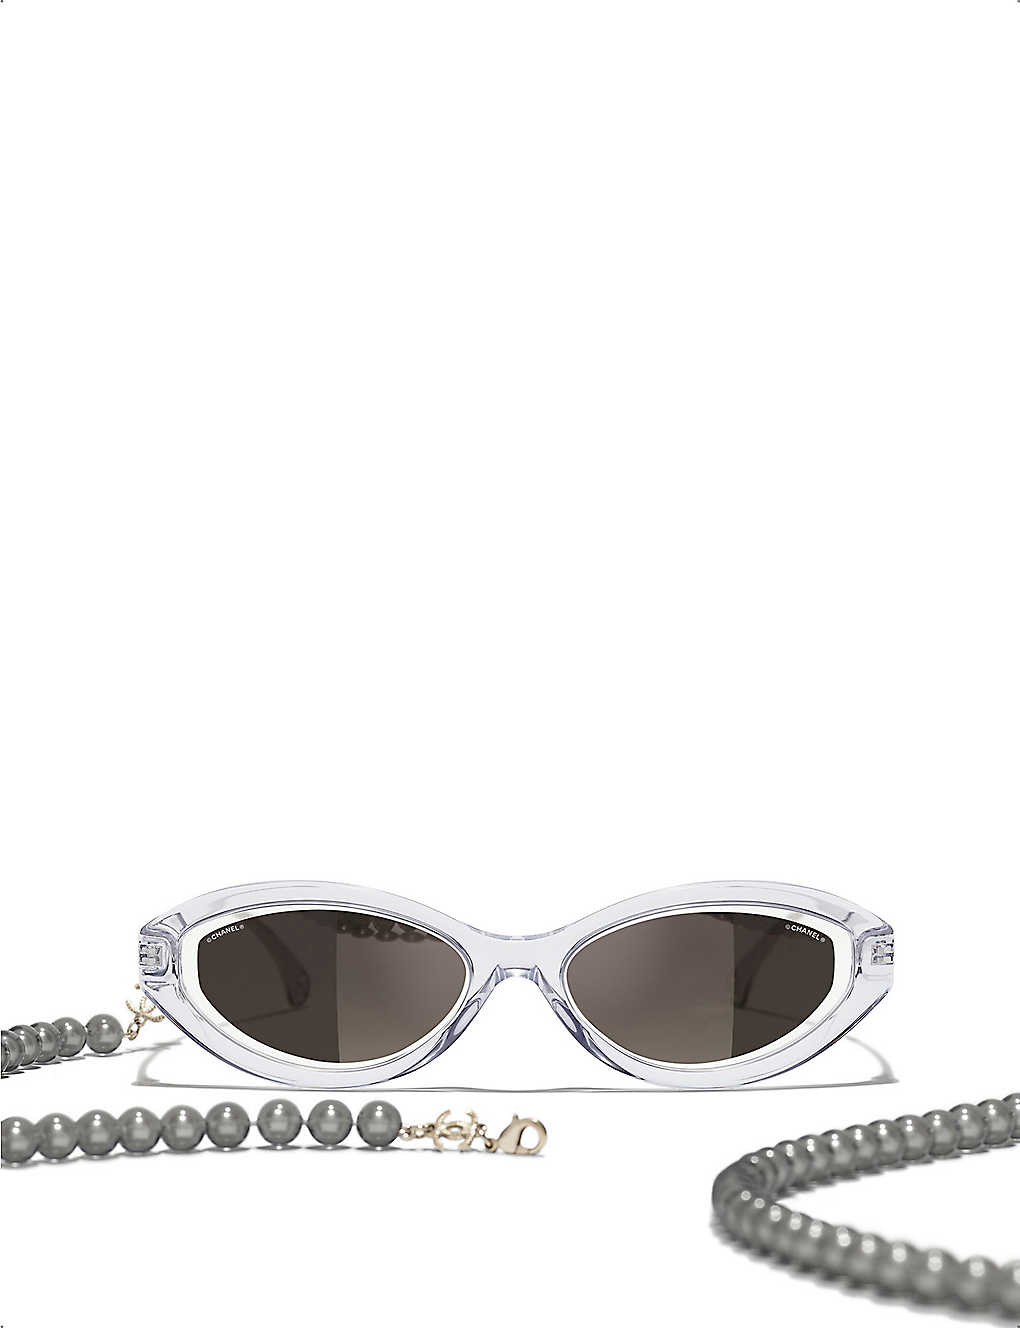 CHANEL: CH5424 acetate oval-frame sunglasses